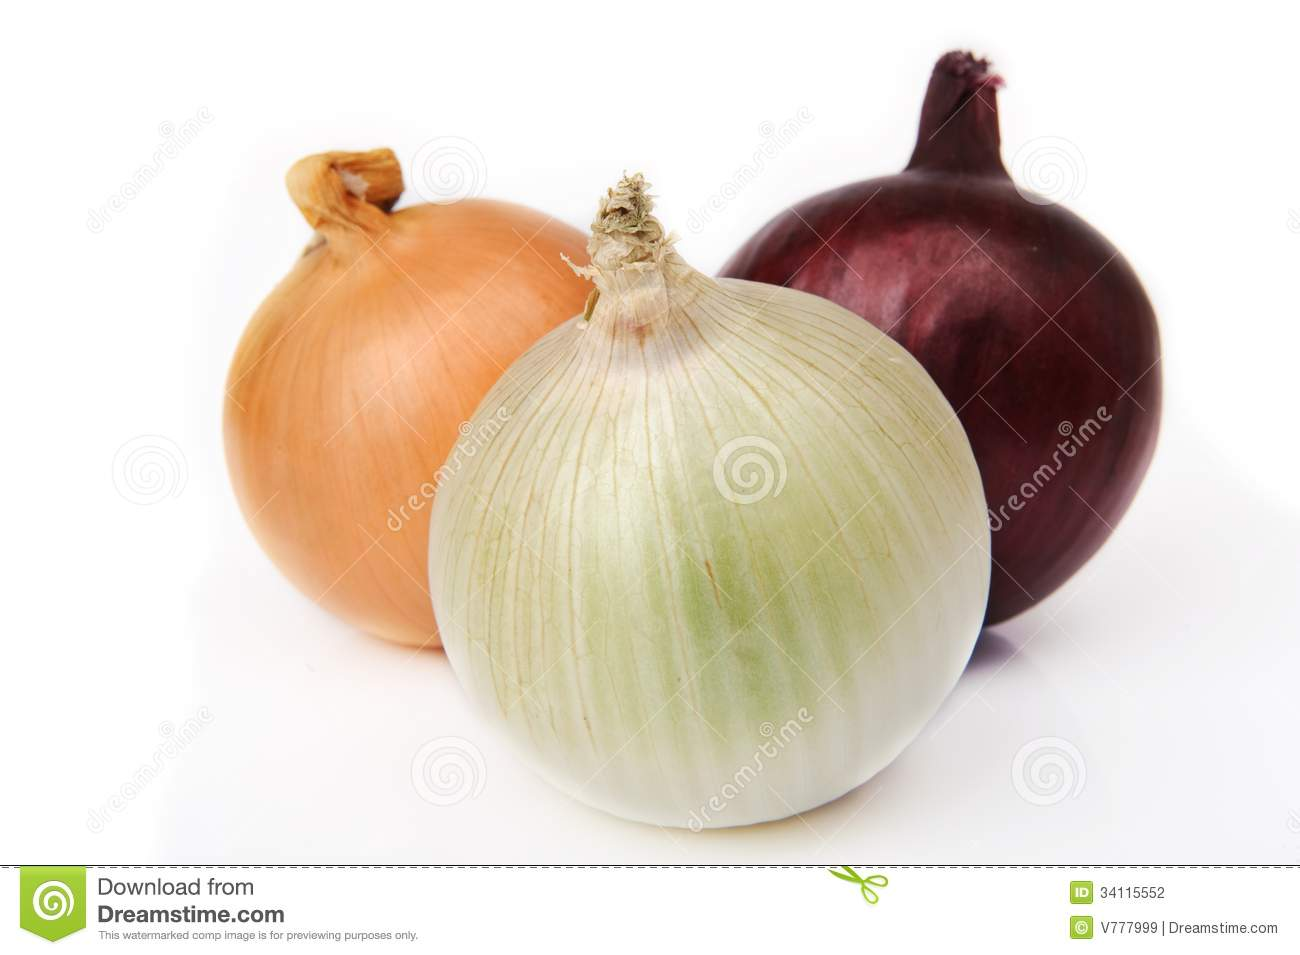 how to cook white onions